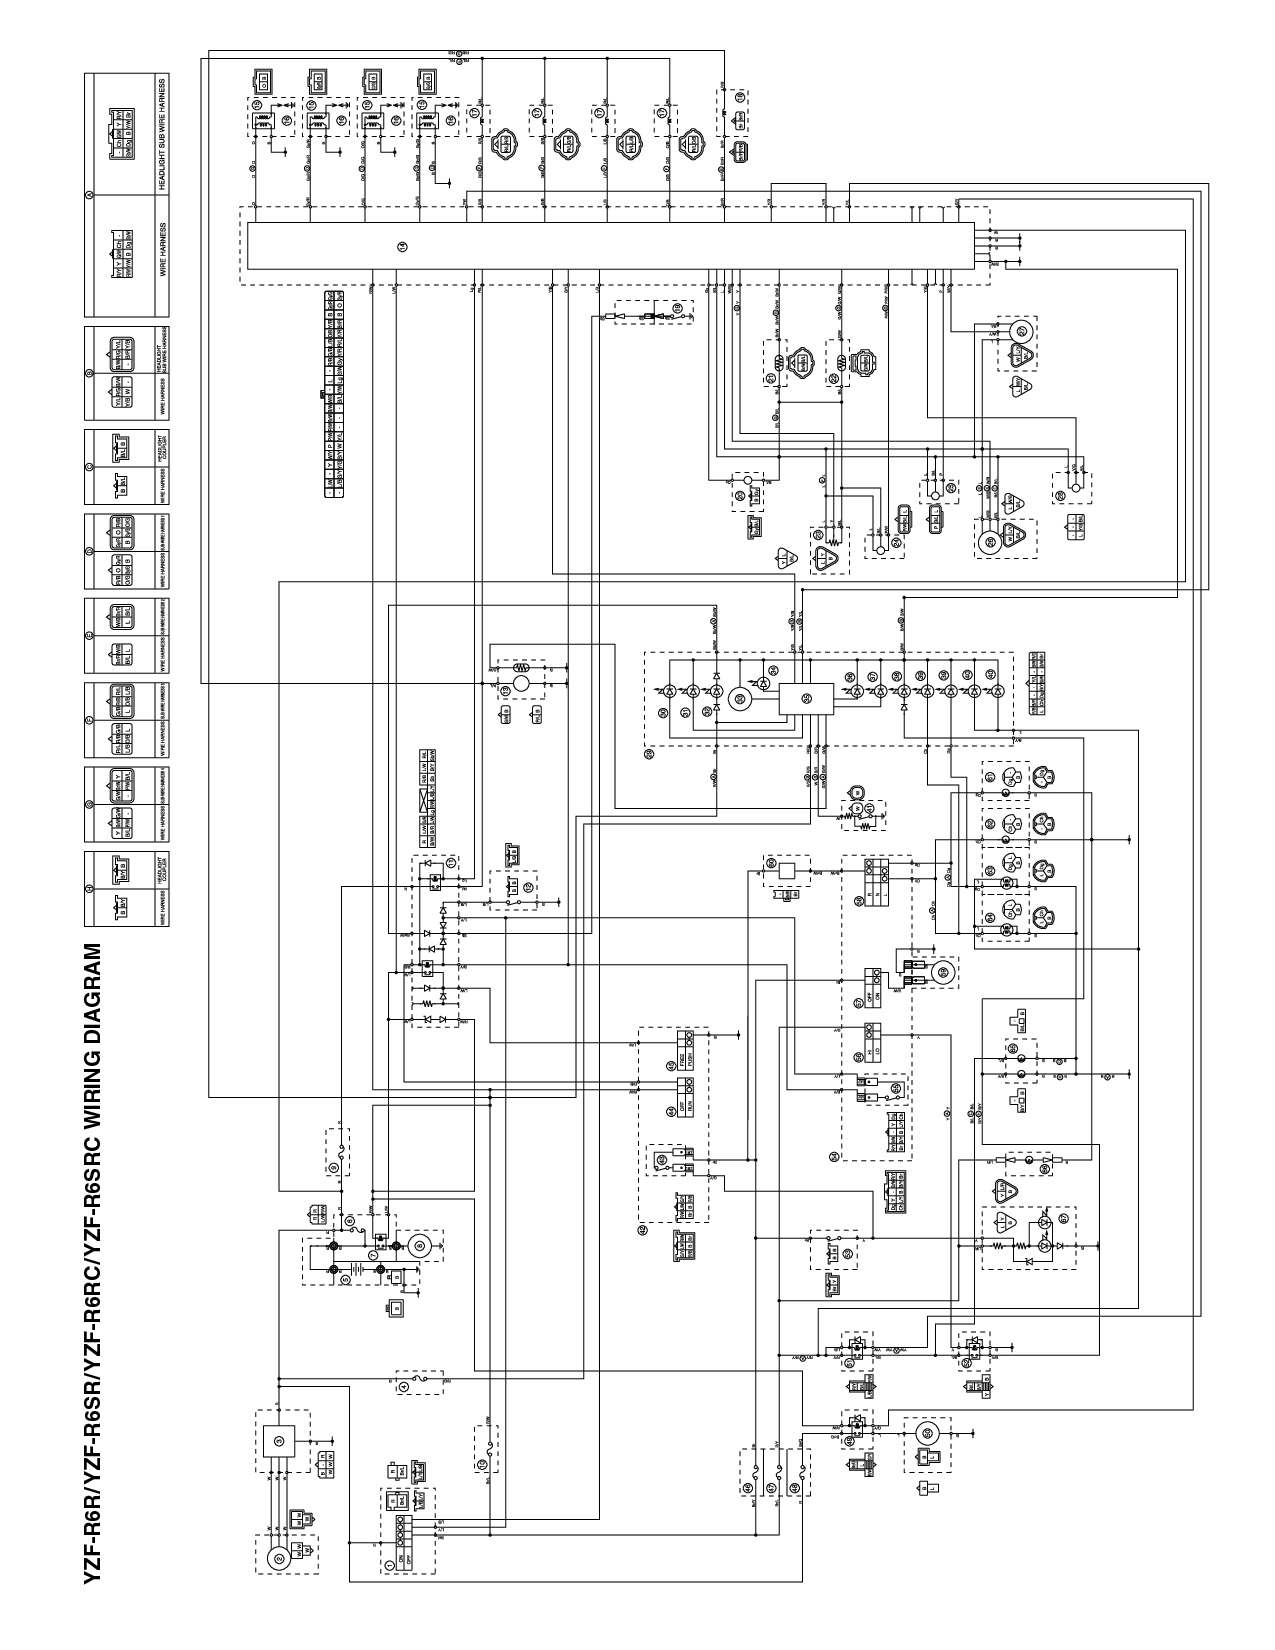 2008 r6 wiring harness diagram wiring diagram RS6 Wiring-Diagram 2008 r6 wiring diagram wiring library